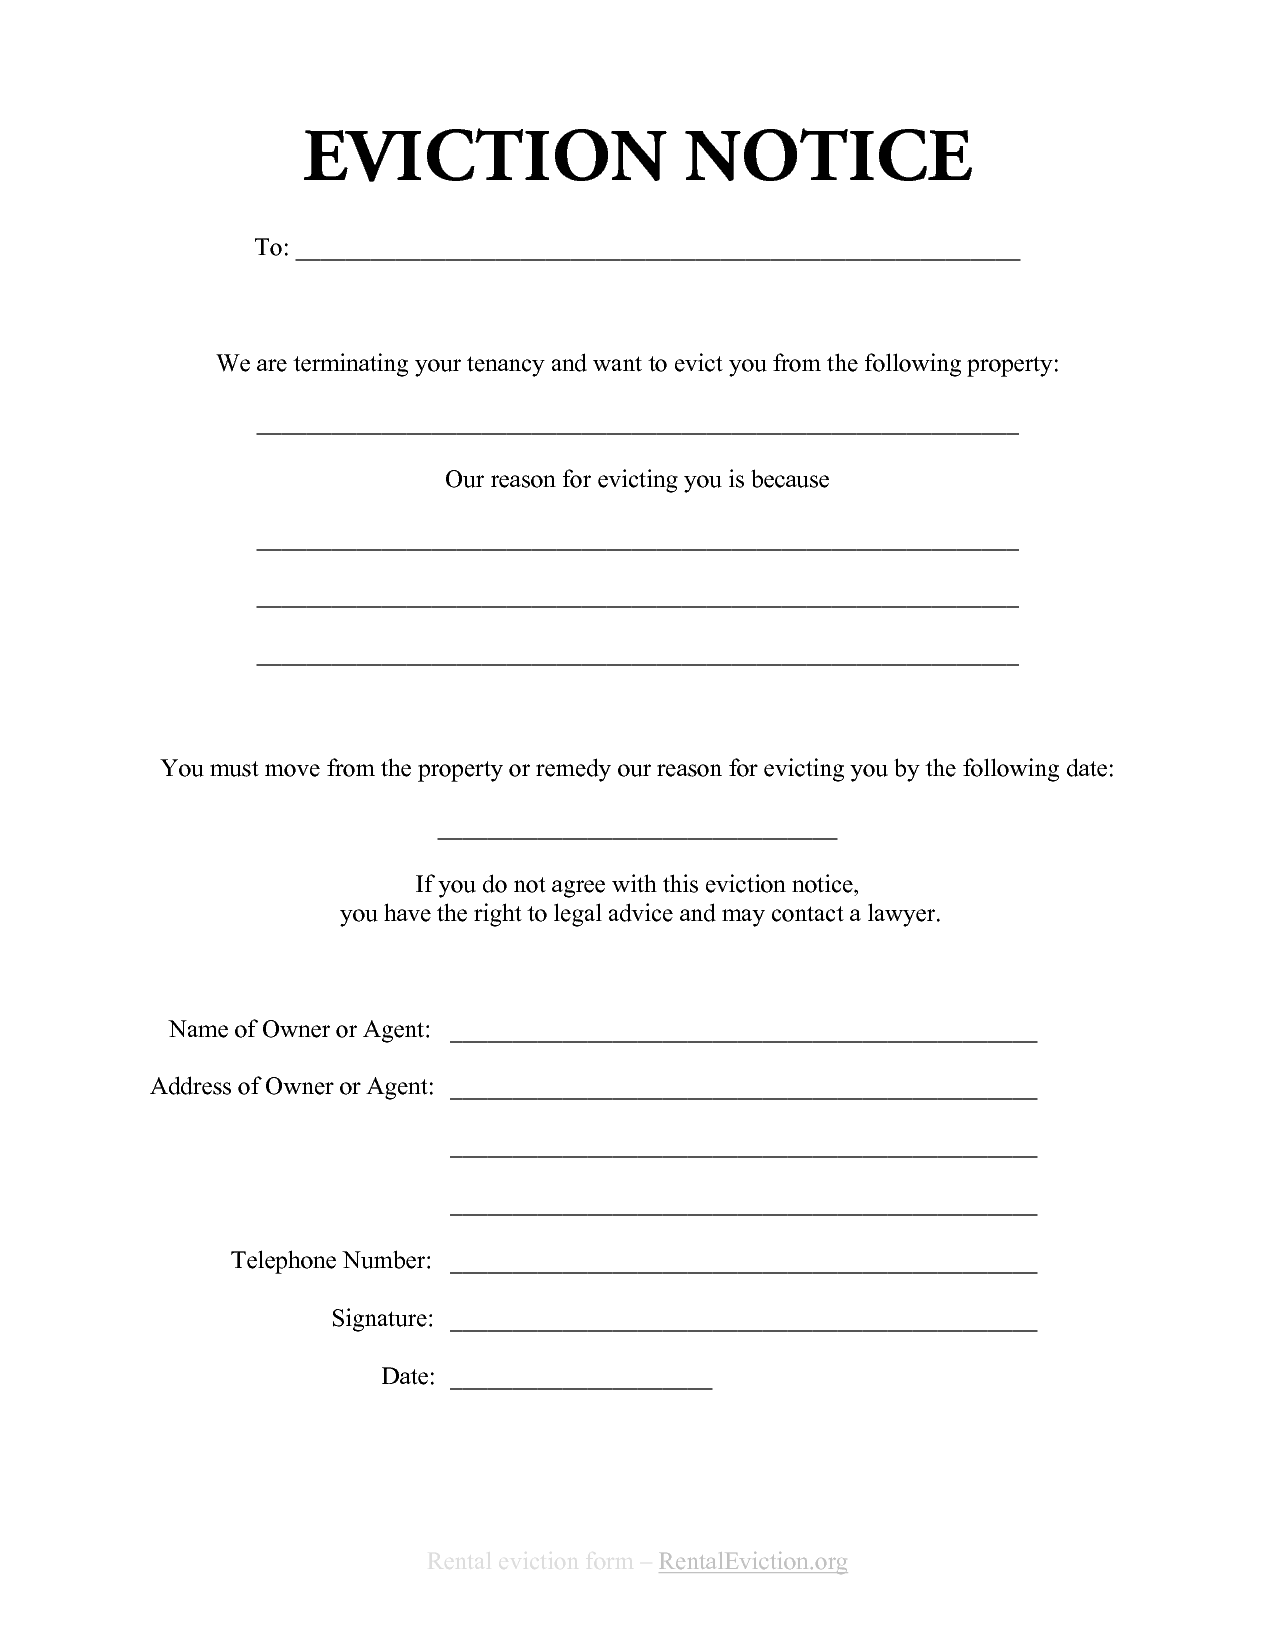 Free Print Out Eviction Notices | free rental eviction notice ...